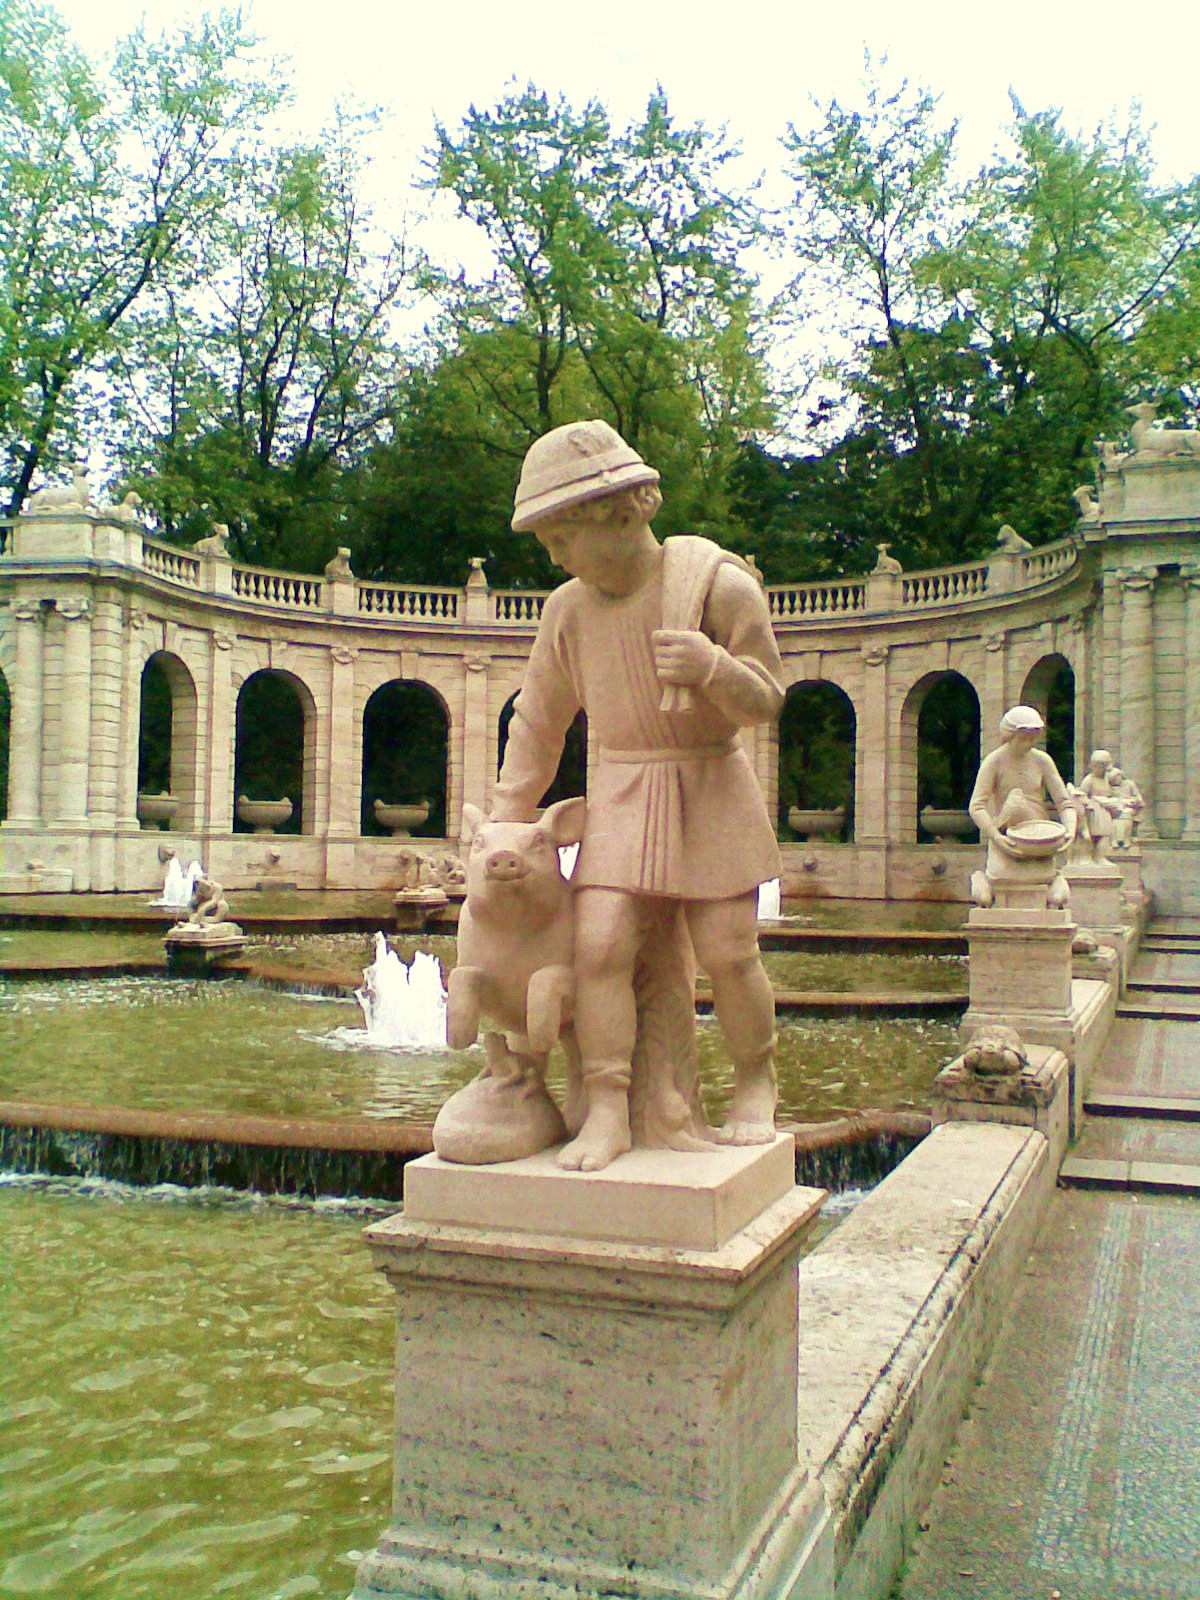 https://upload.wikimedia.org/wikipedia/commons/8/8e/M%C3%A4rchenbrunnen_-_Hans_im_Gl%C3%BCck_307.jpg